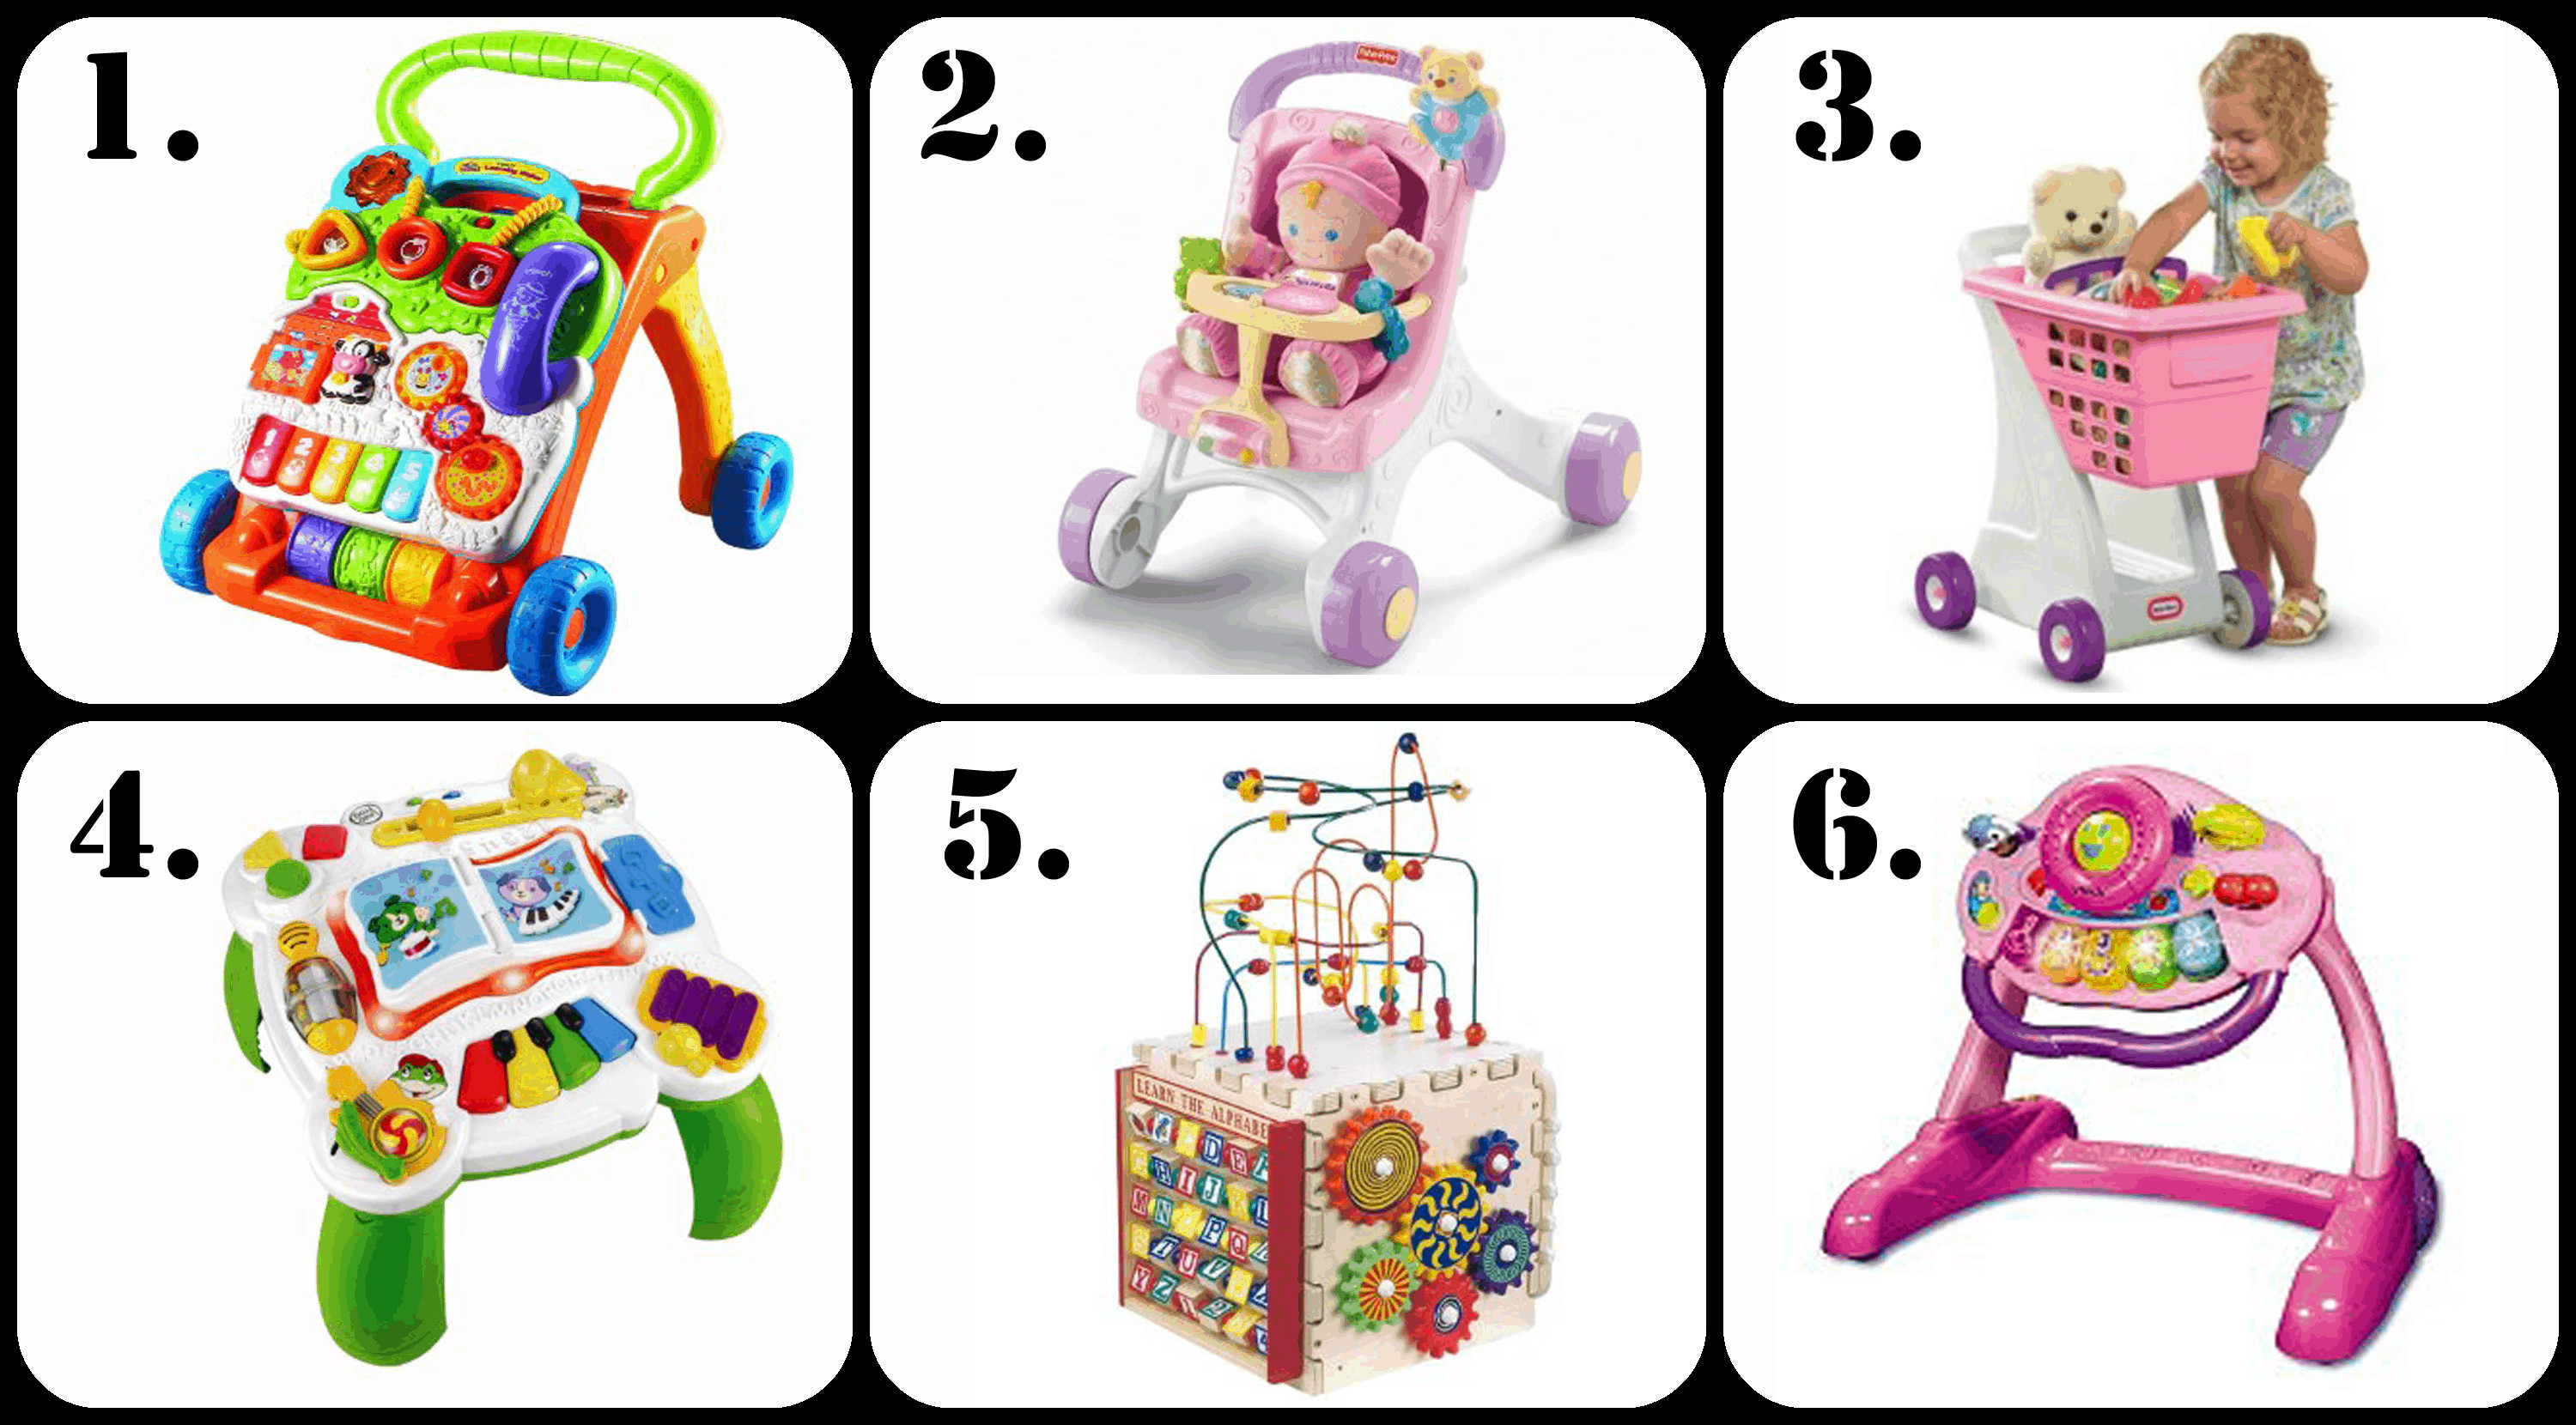 Best ideas about Gift Ideas For 1 Year Old Baby Girl . Save or Pin BEST Gifts for a 1 Year Old Girl • The Pinning Mama Now.